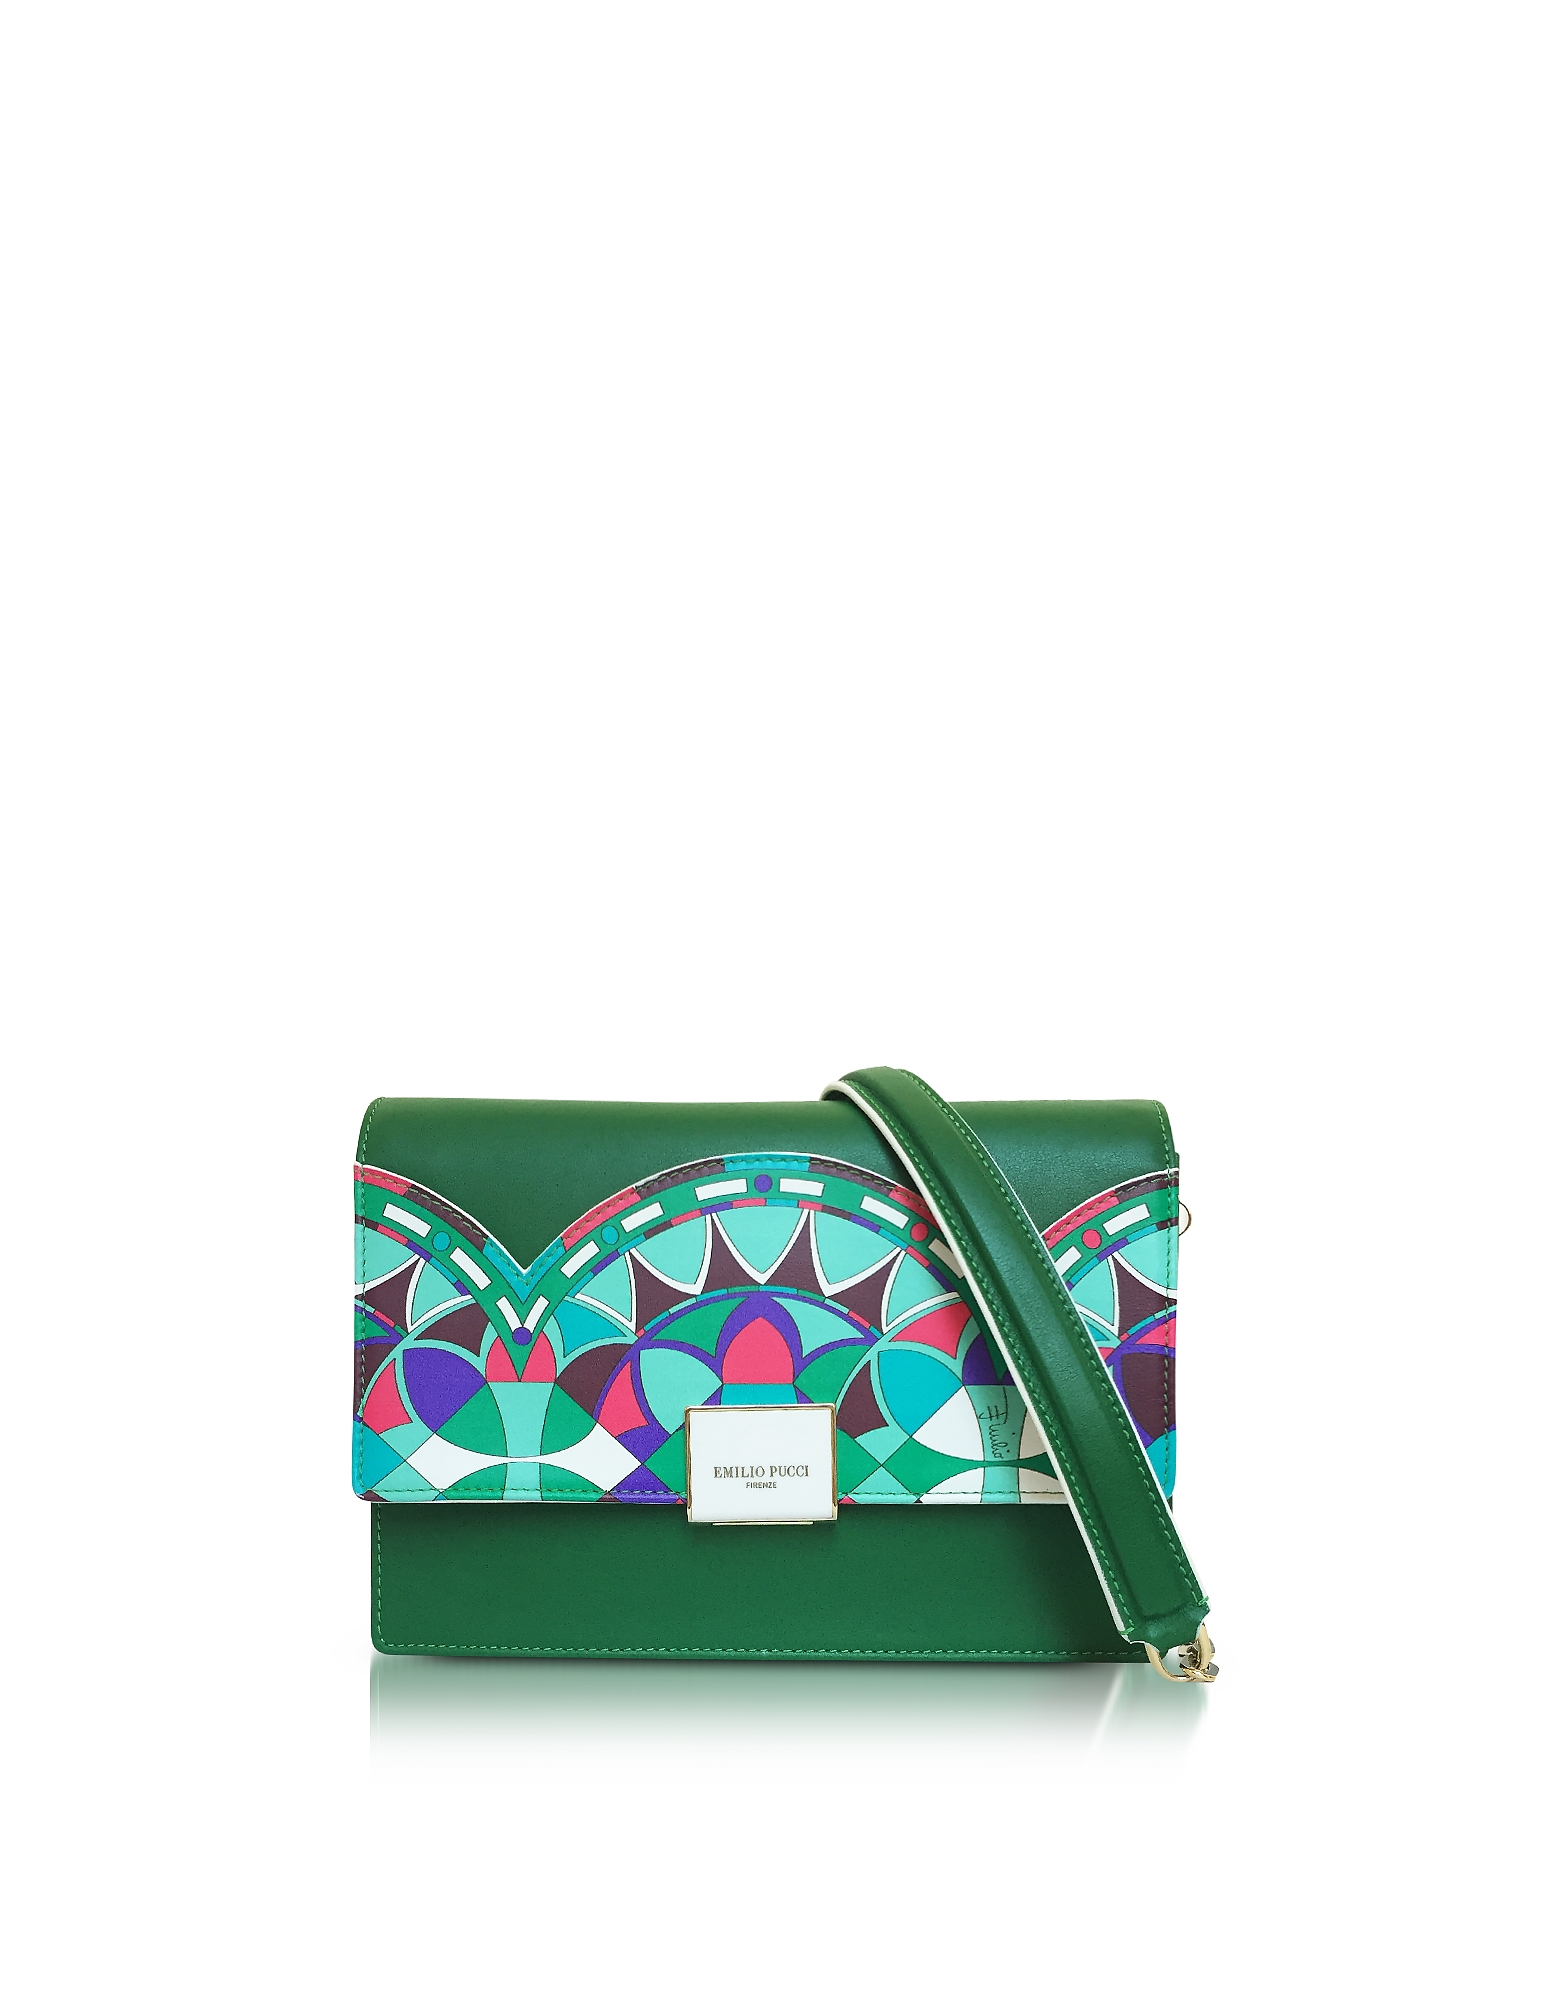 Emilio Pucci Handbags, Emerald Green Optical Printed Leather Shoulder Bag